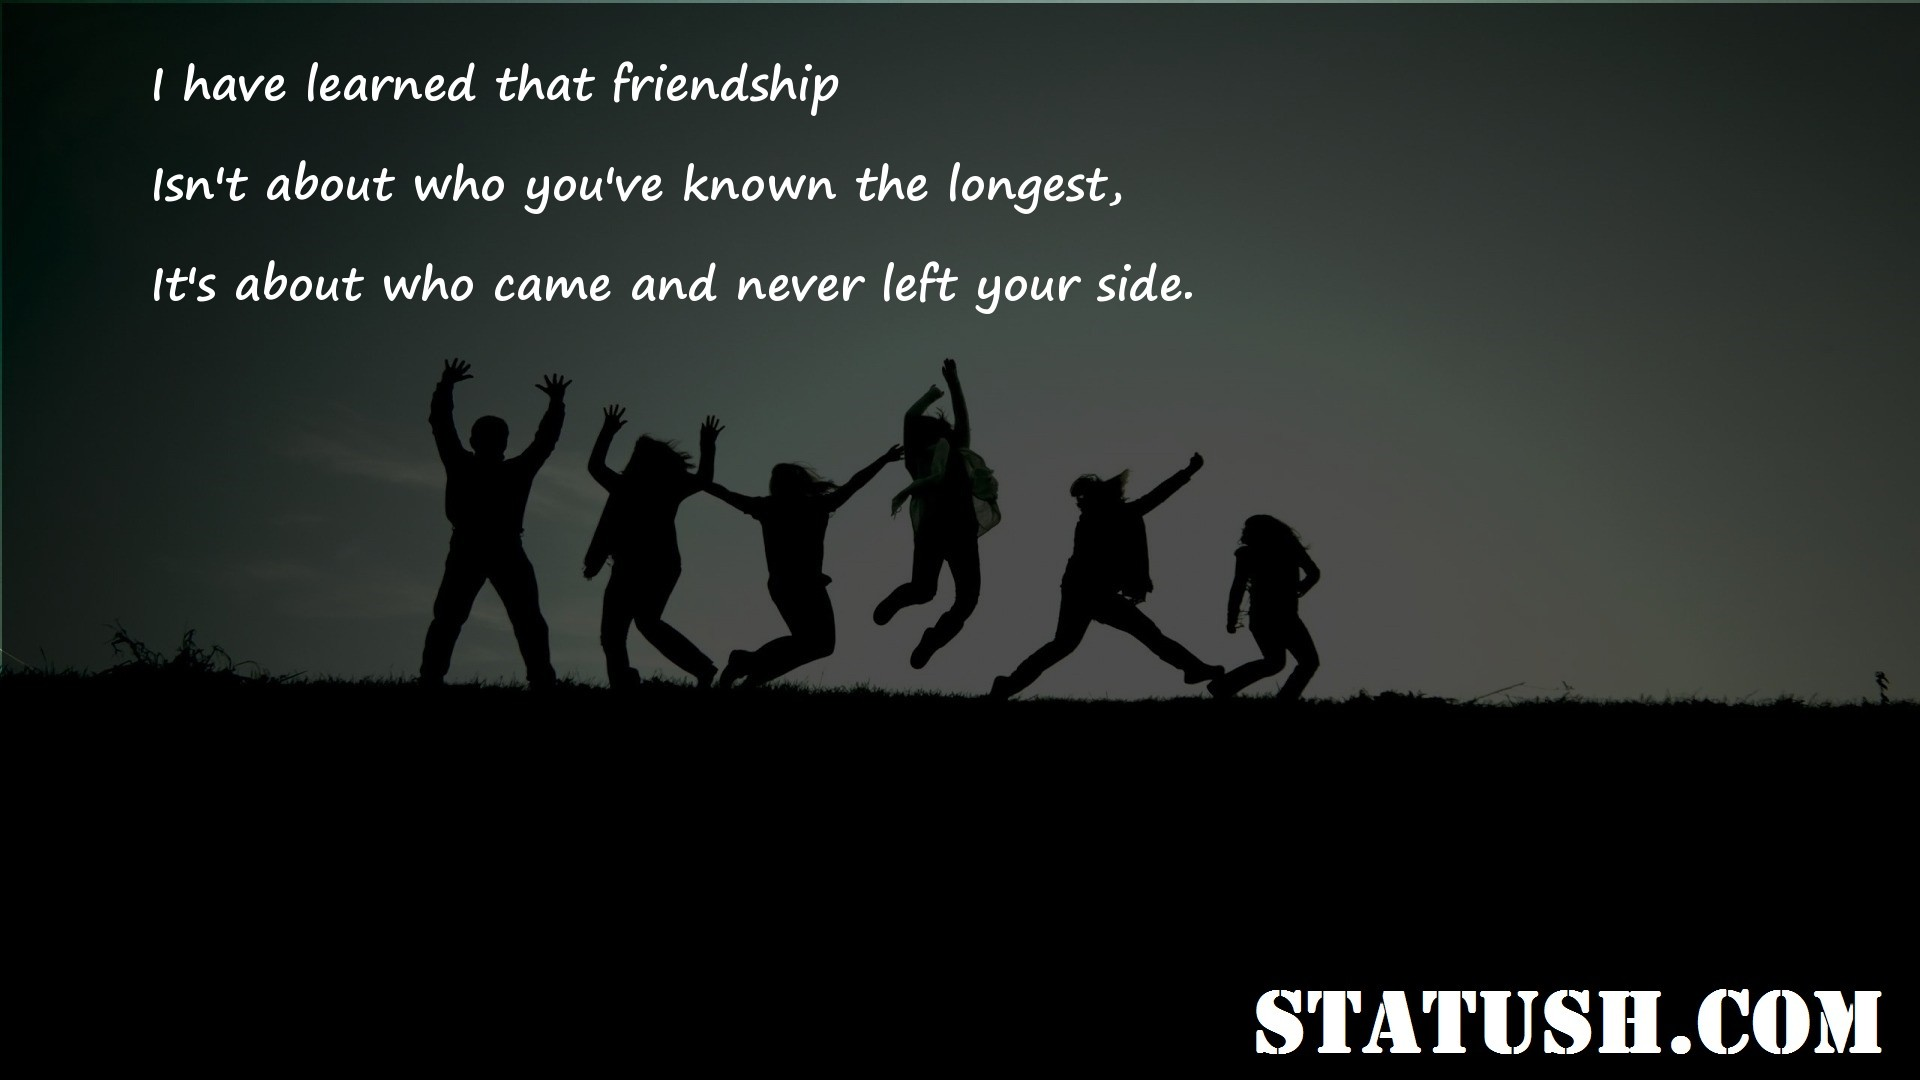 I have learned that friendship